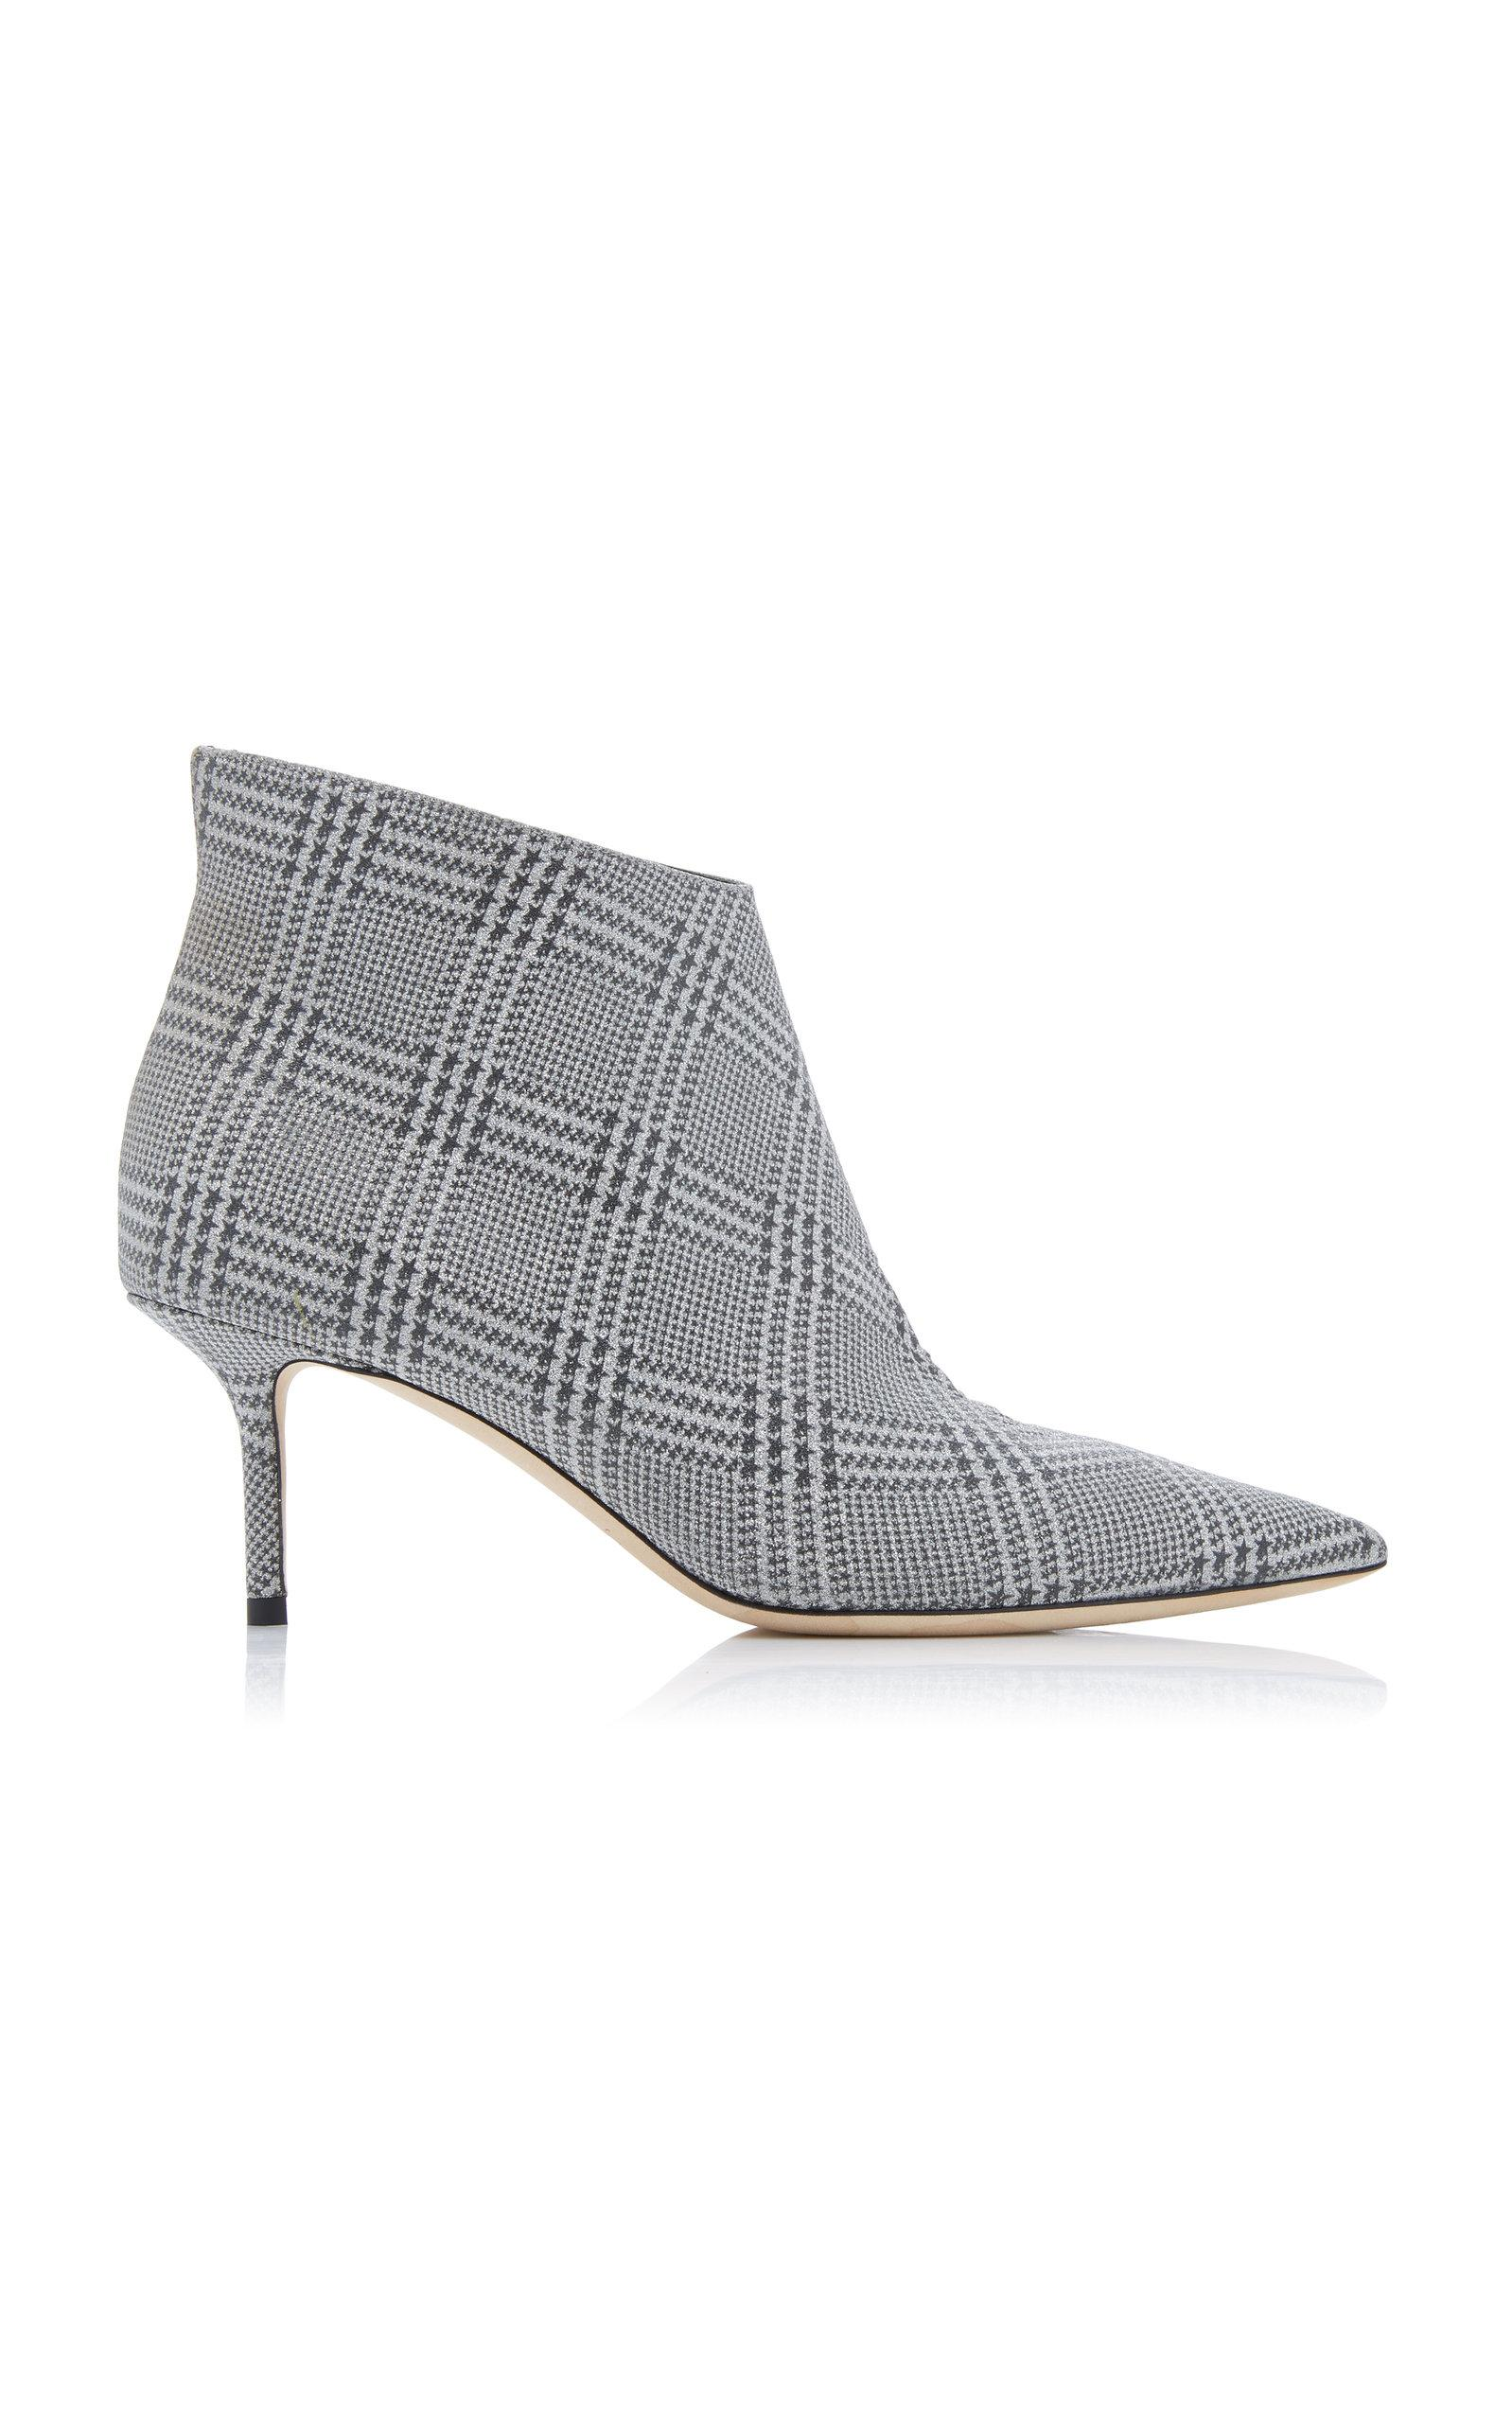 4806e81289ca Lyst - Jimmy Choo Marinda Glittered Plaid Leather Ankle Boots in ...